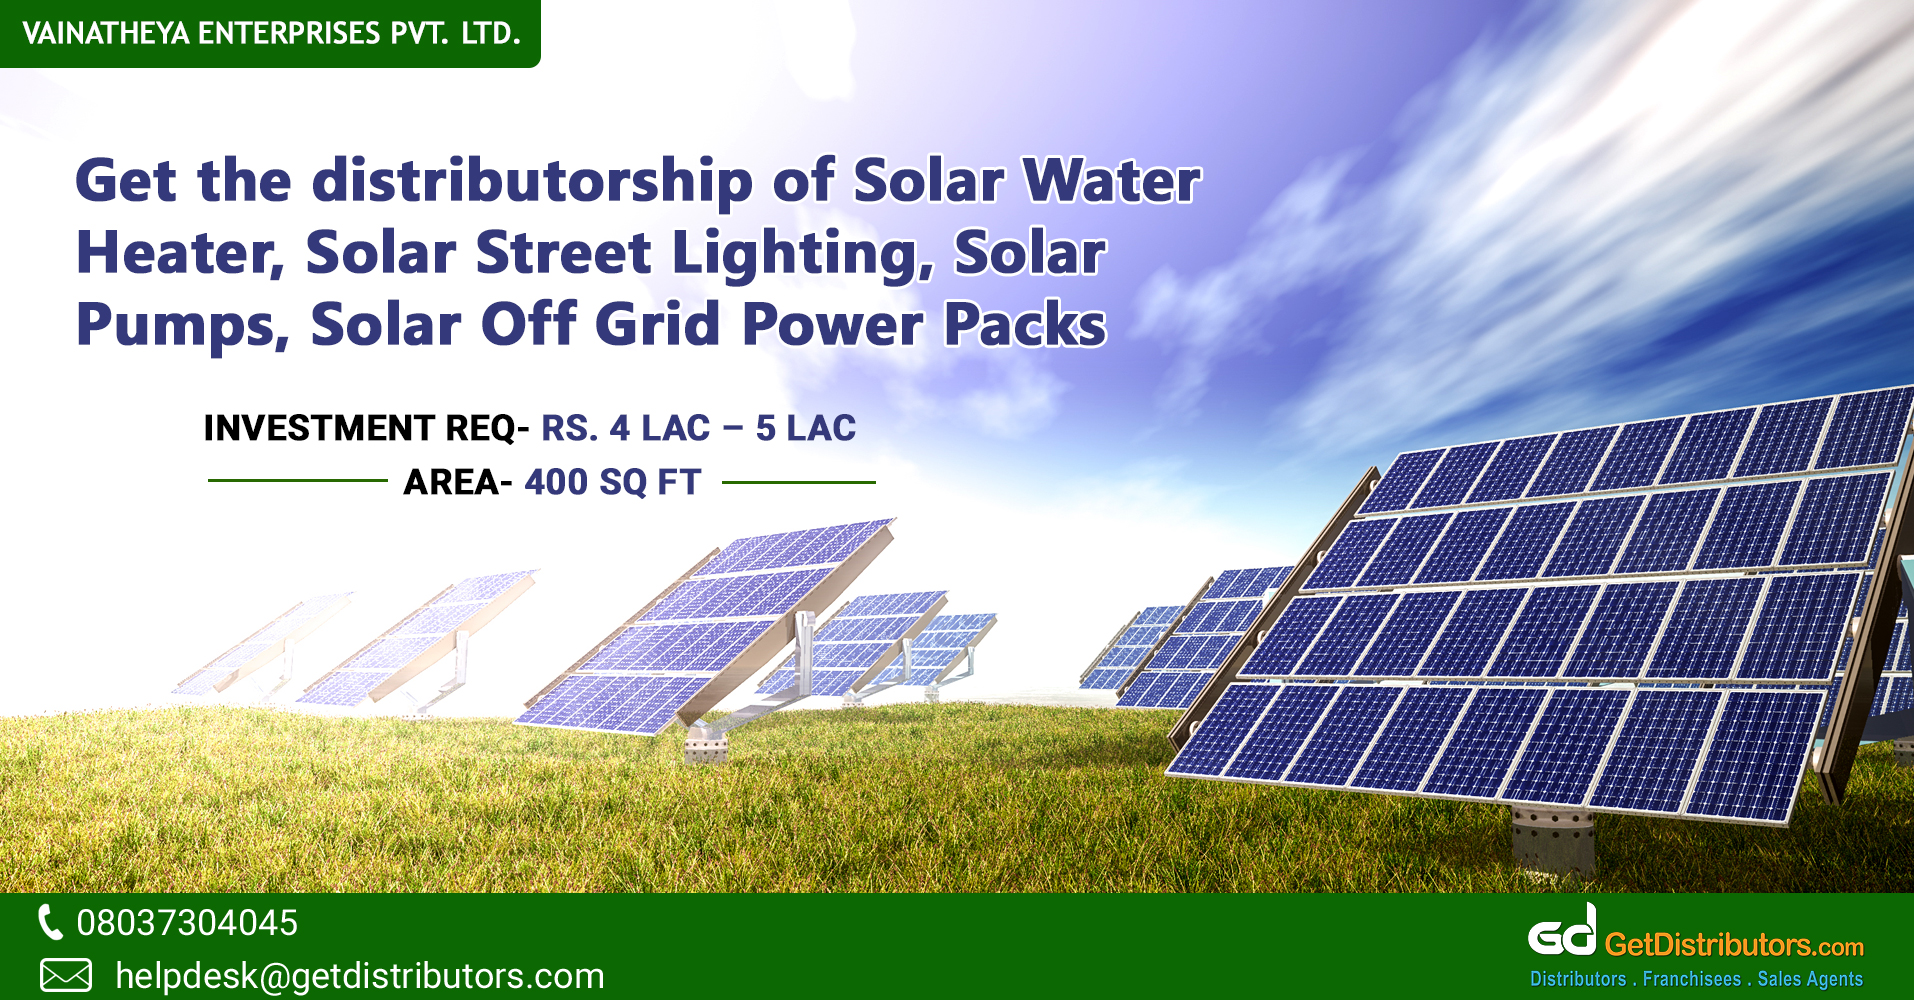 Top Grade Solar Products And Equipment For Distribution